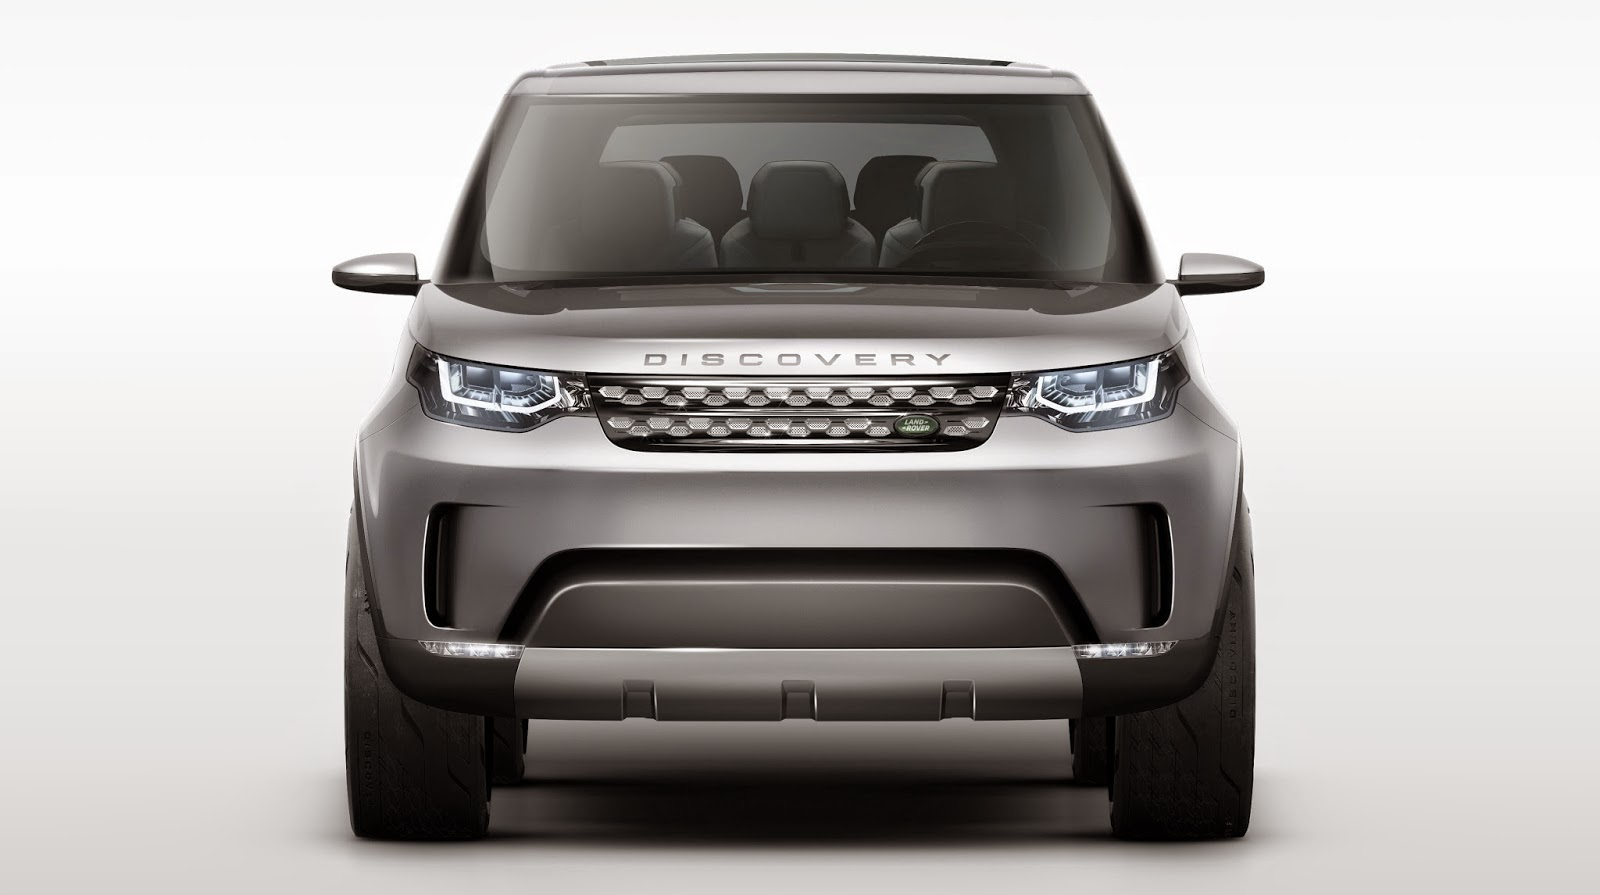 Download Land Rover Discovery 4 L319 LR4 2015 Owner's Handbook Manual.  Content: Owner's Handbook / Owner's Manual File type: ZIP (PDF files zipped)